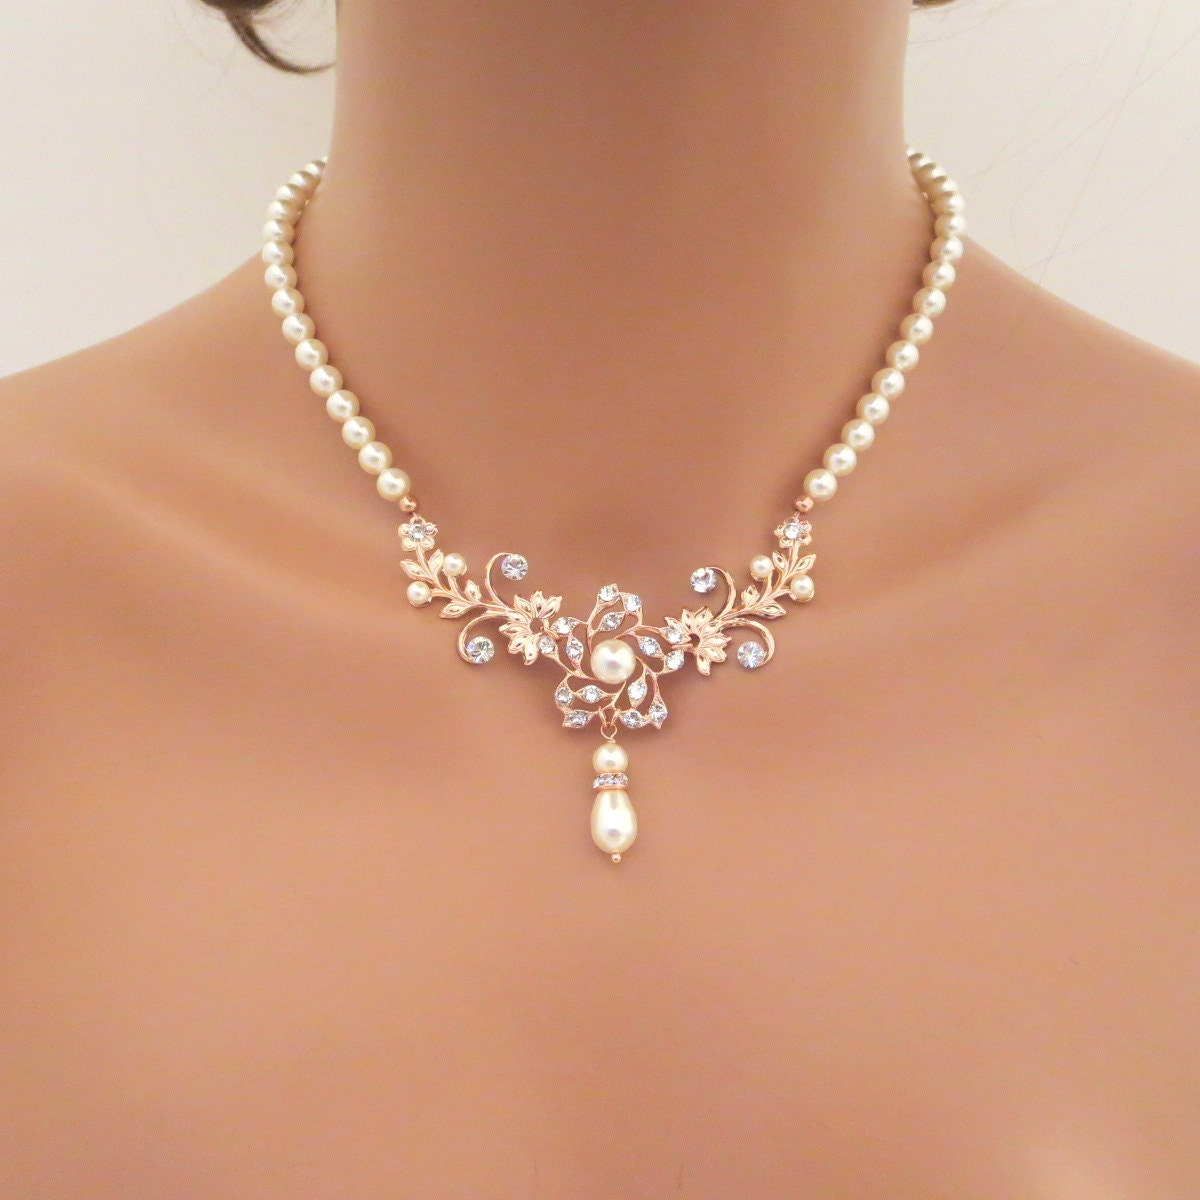 Image Result For Rose Gold And Pearl Bridal Jewelry Online